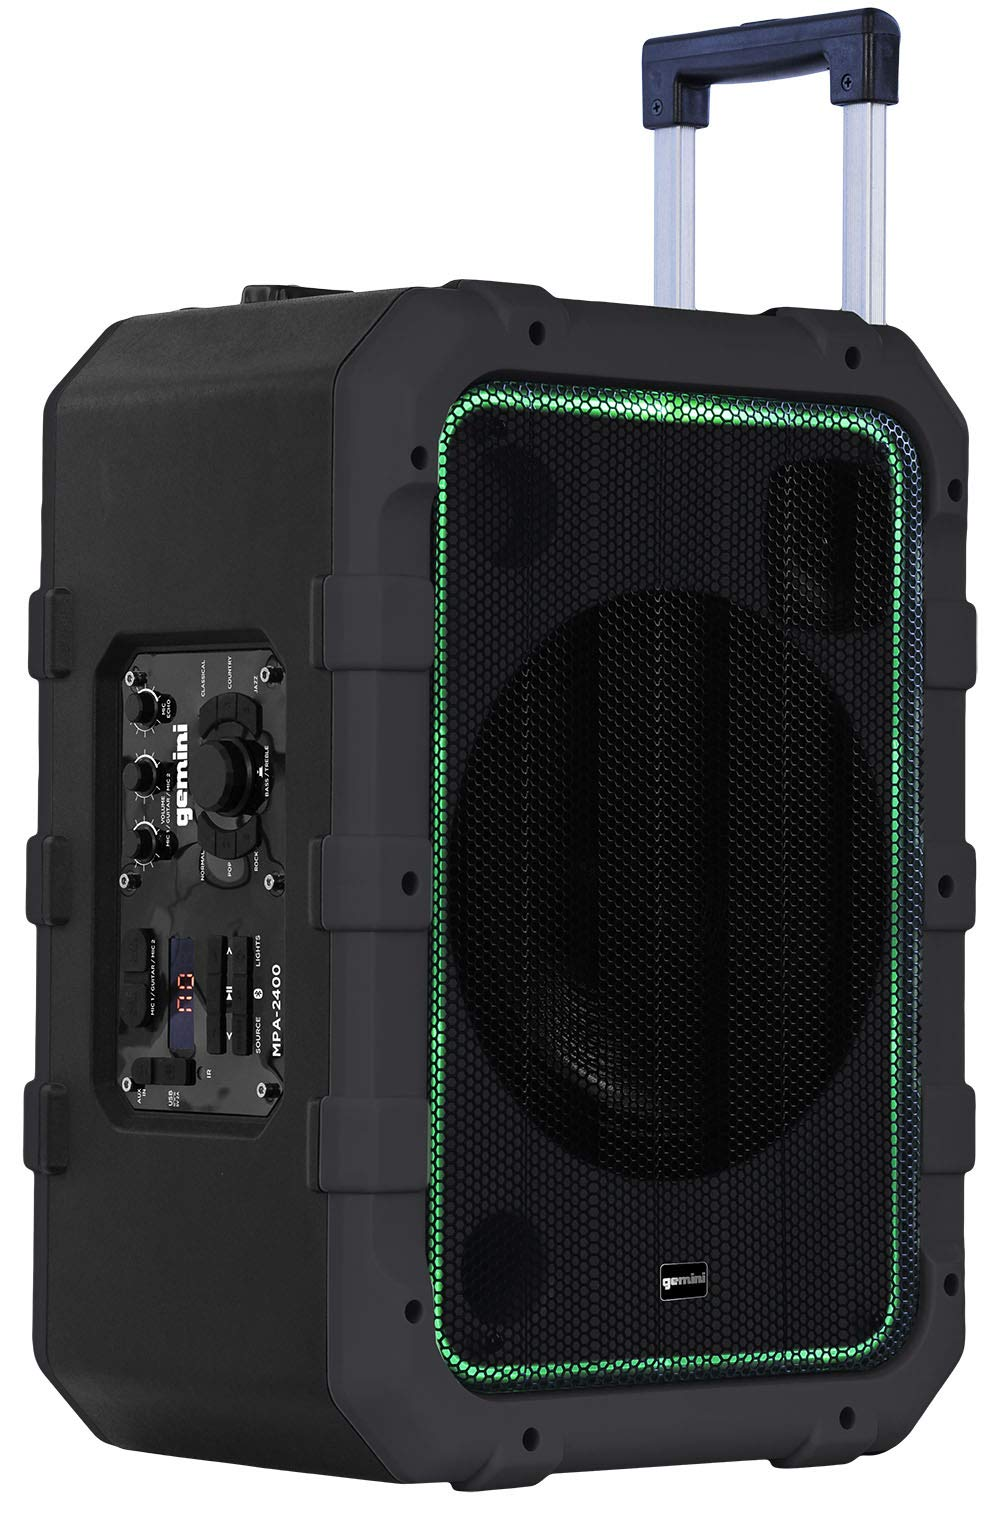 Gemini MPA-2400 10'' Rechargeable Weather-Resistant Trolley Speaker with Bluetooth, LED Light Show, 6 DSP Modes, Microphone and Guitar Inputs, 240W Peak Power, FM Radio and Up to 18 Hours Battery Life by Gemini